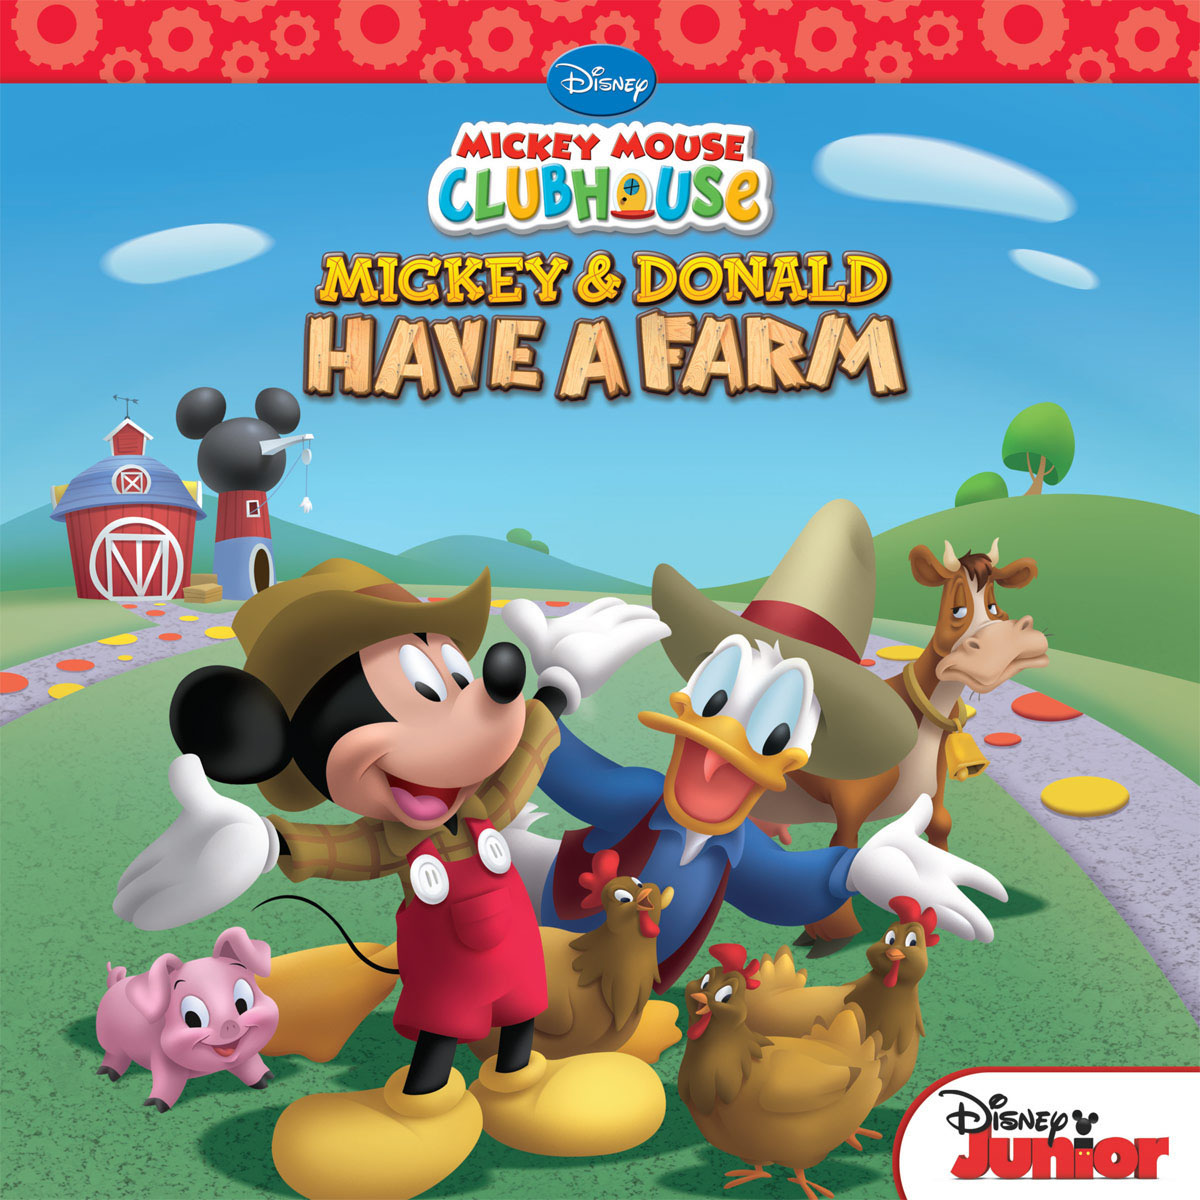 Mickey Mouse Clubhouse: Mickey and Donald Have a Farm By: William Scollon